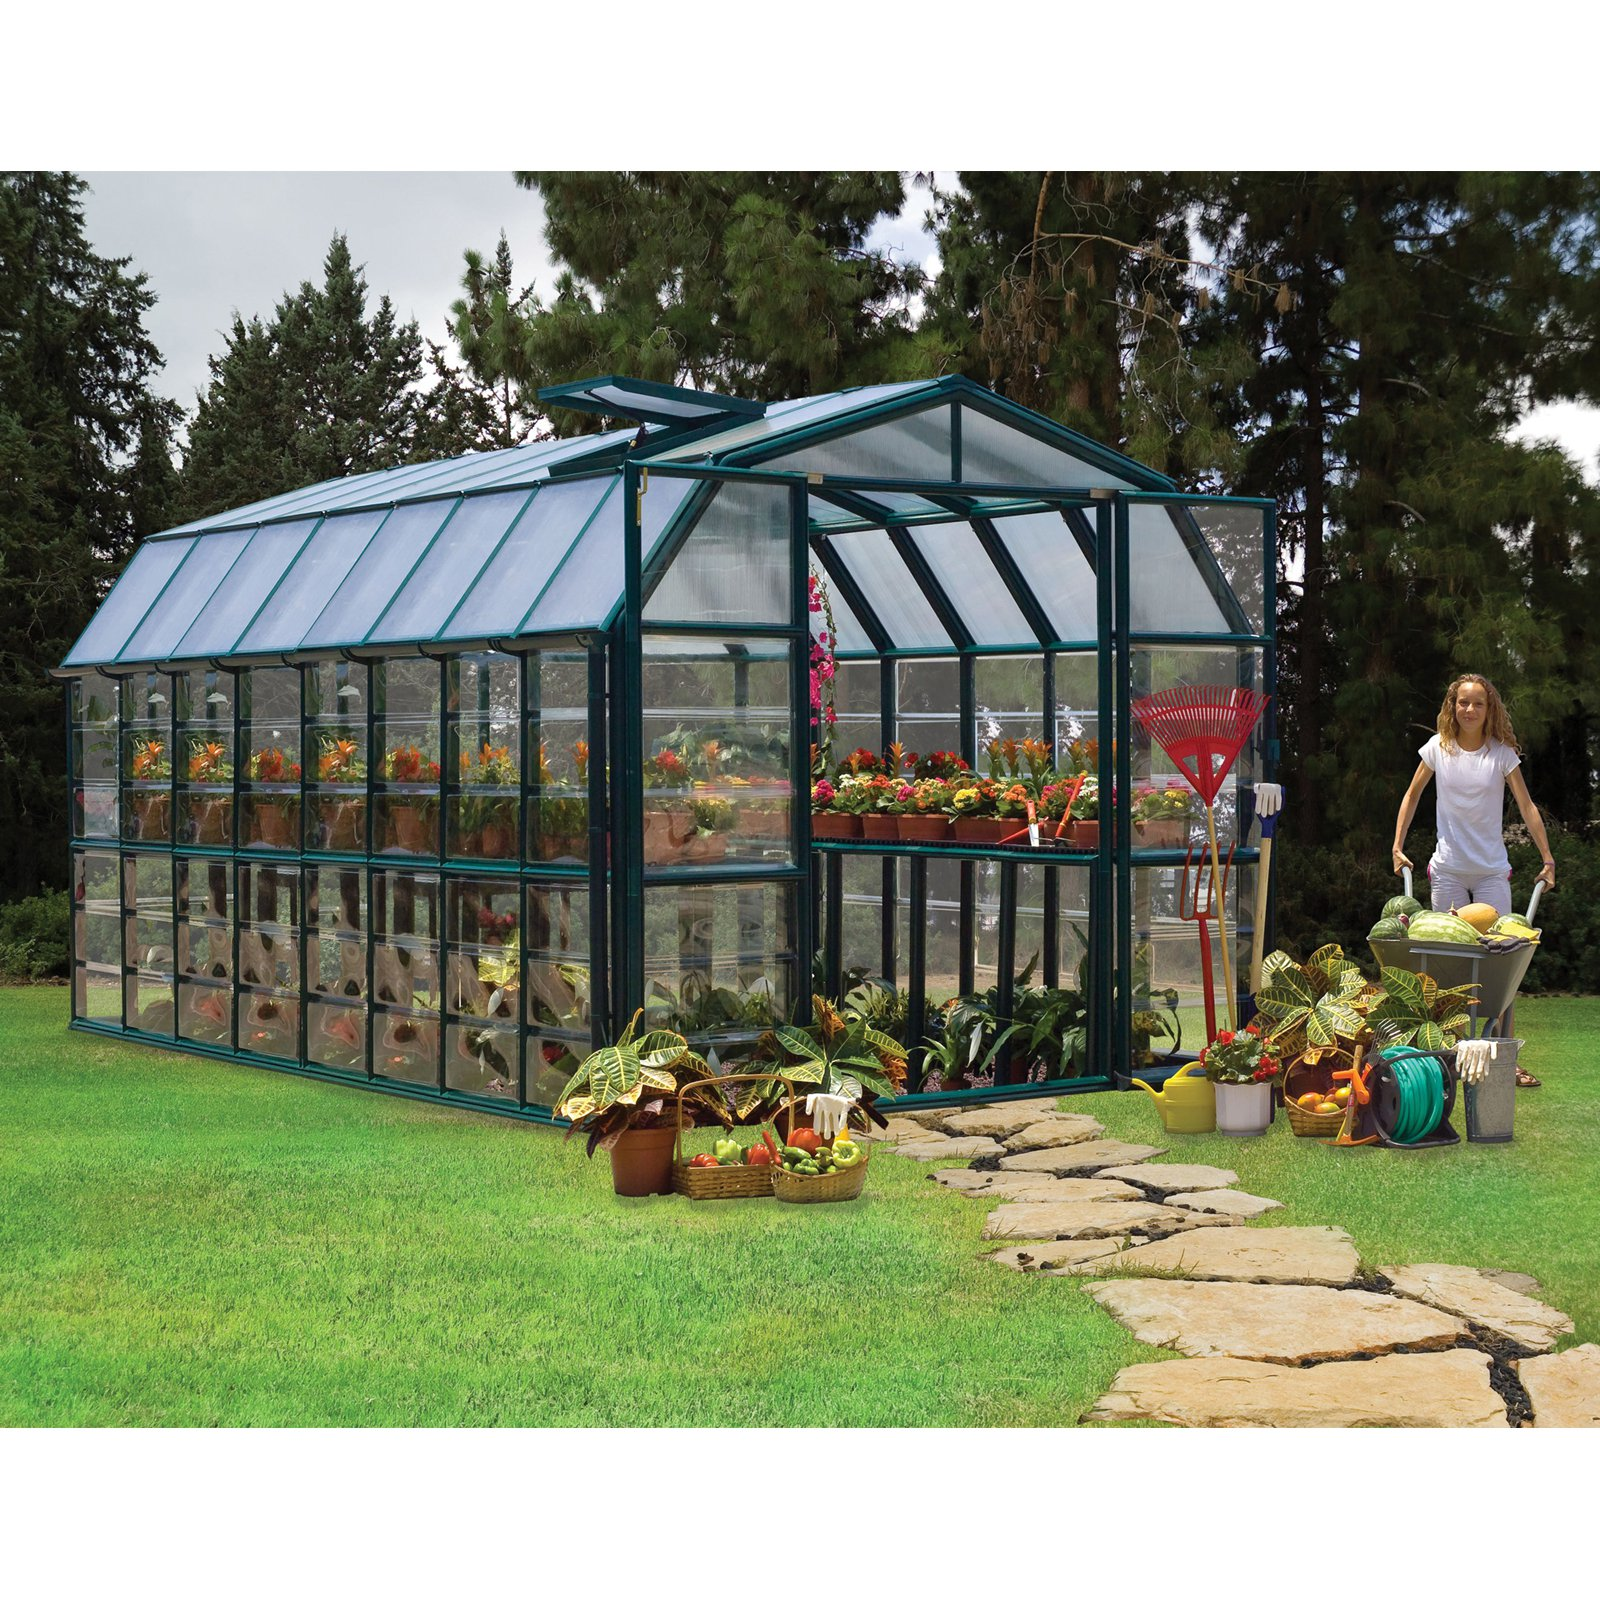 Palram Grand Gardener Greenhouse 8' x 16' by Palram